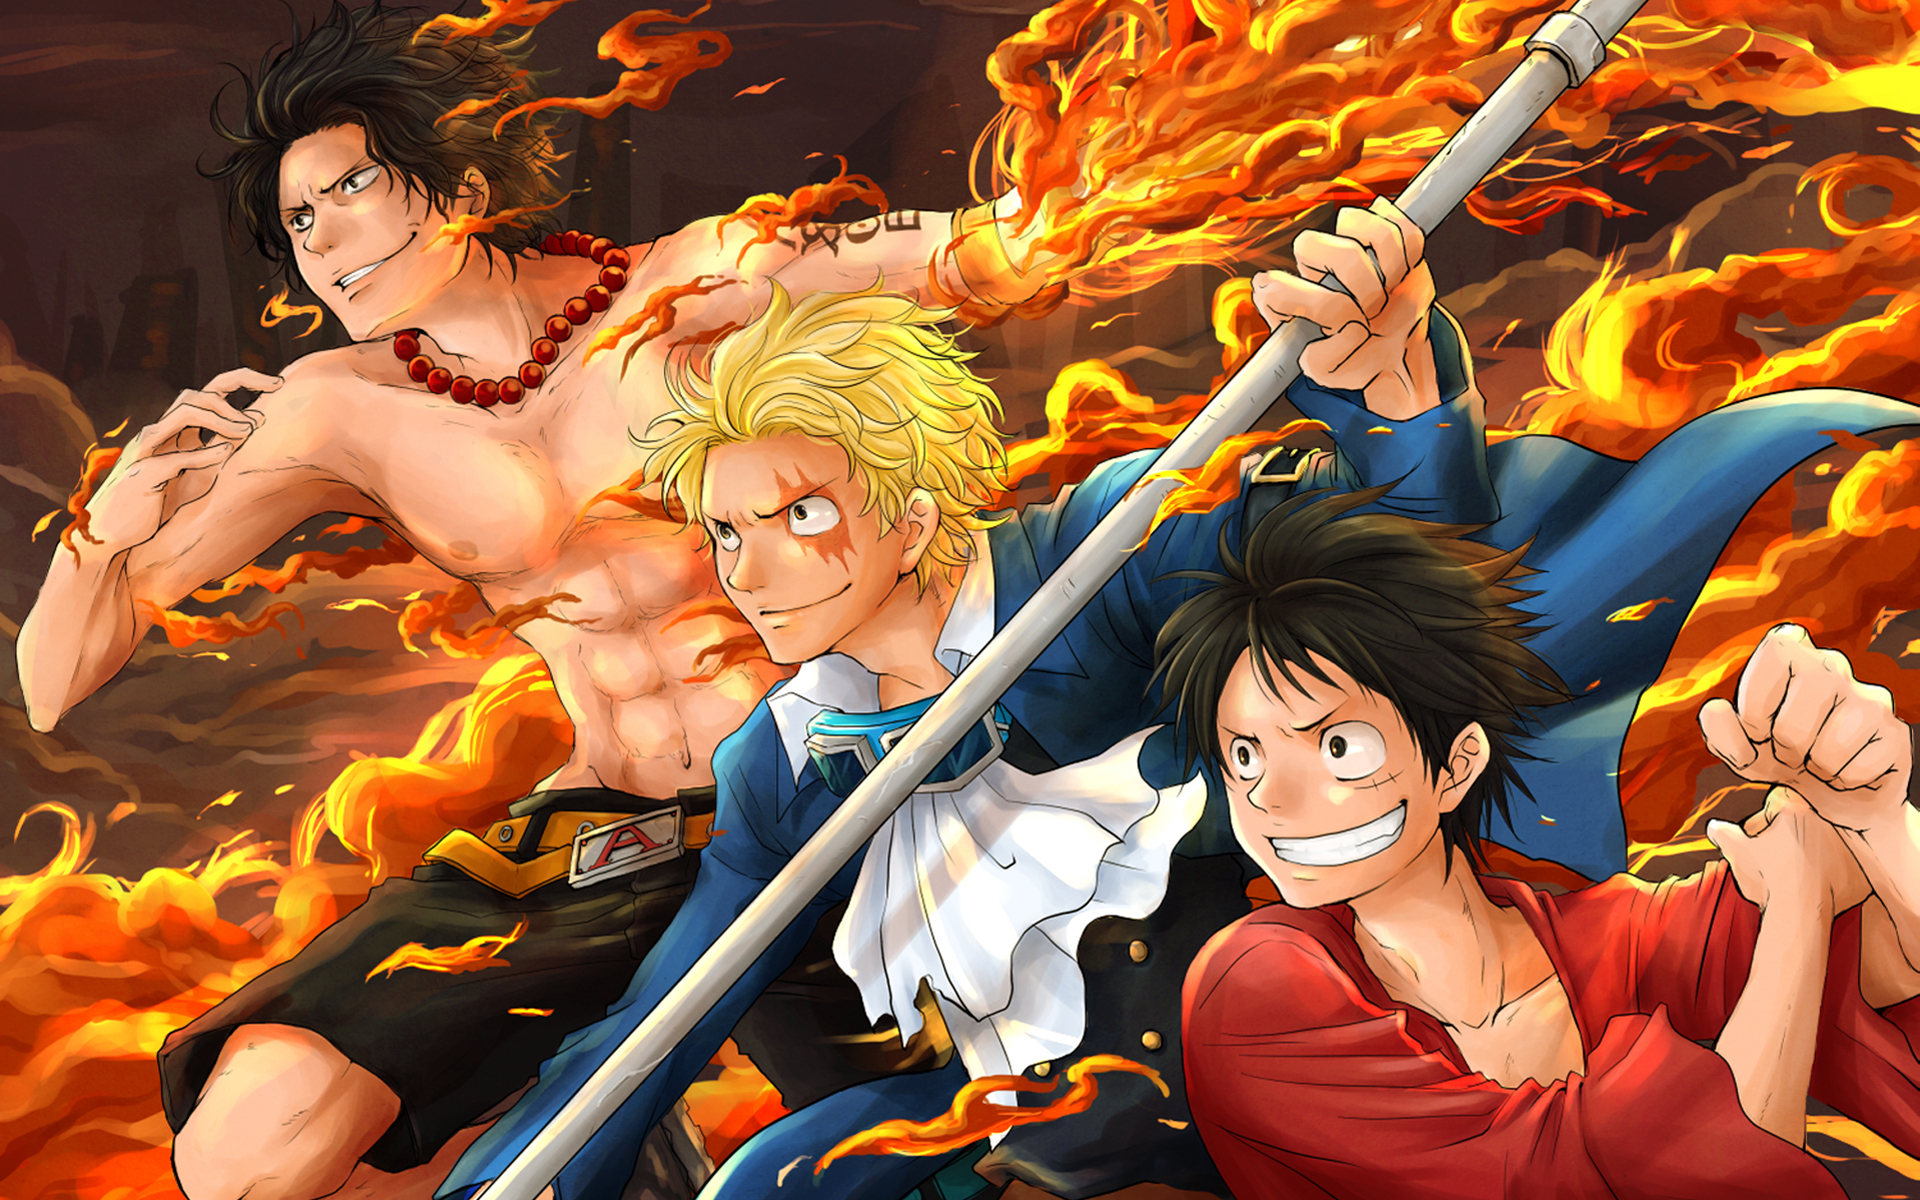 Firewall36 Images One Piece HD Wallpaper And Background Photos